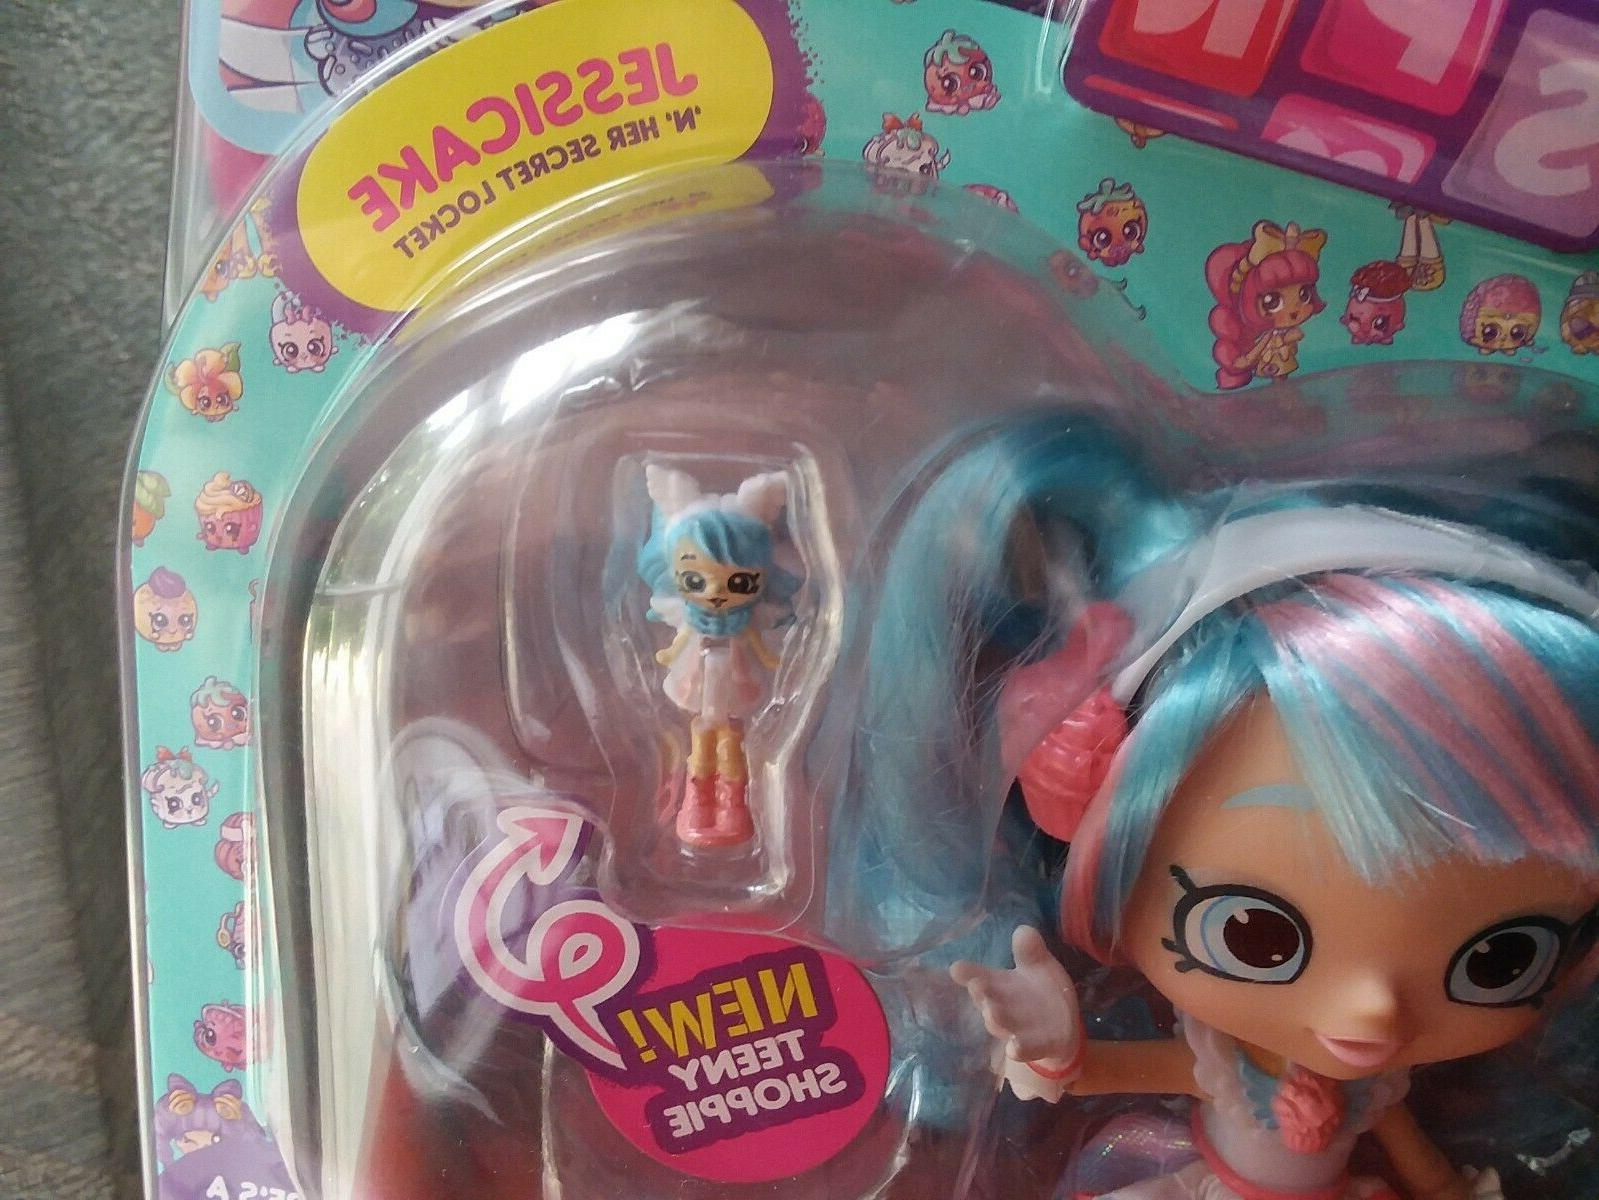 Shopkins Lil Secrets doll